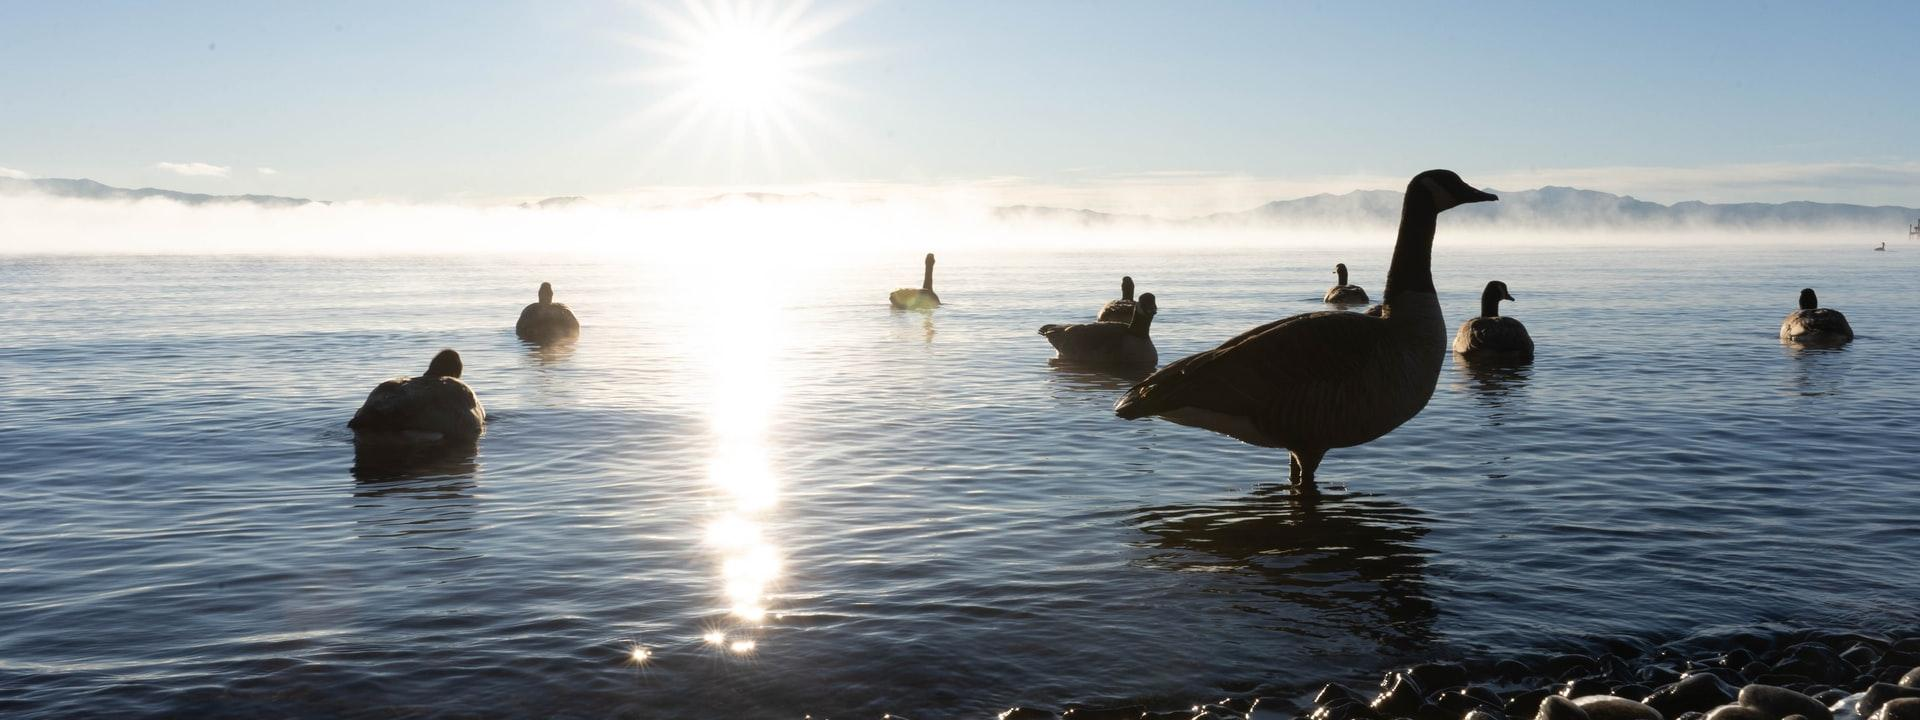 Geese in the water with the sun shining on the horizon